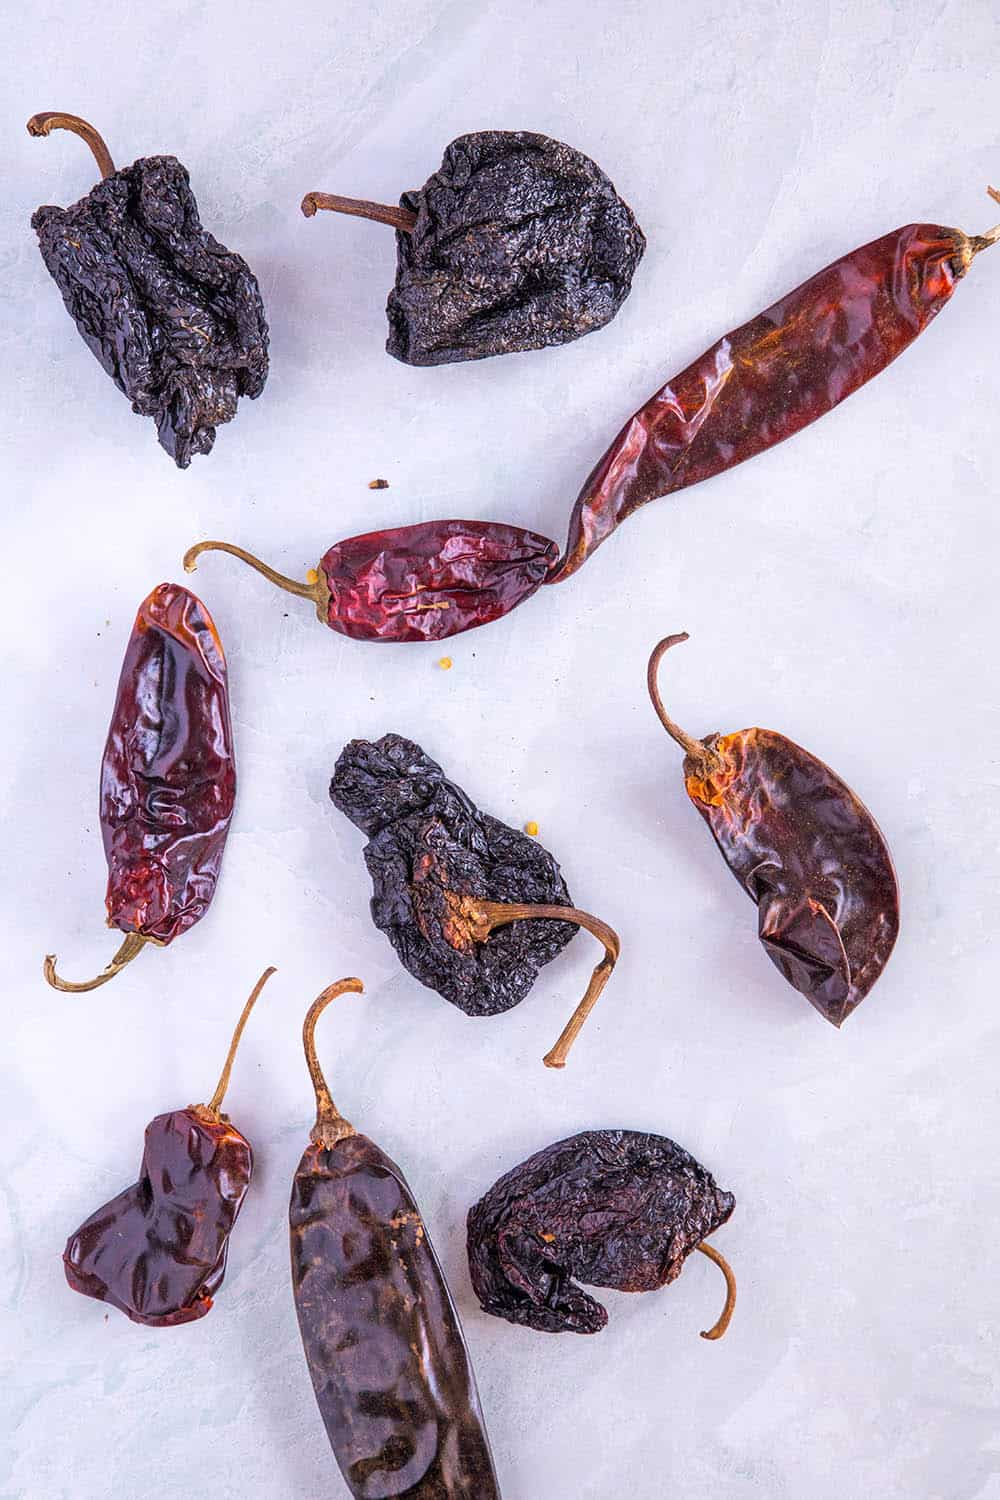 The chili peppers for our Texas chili